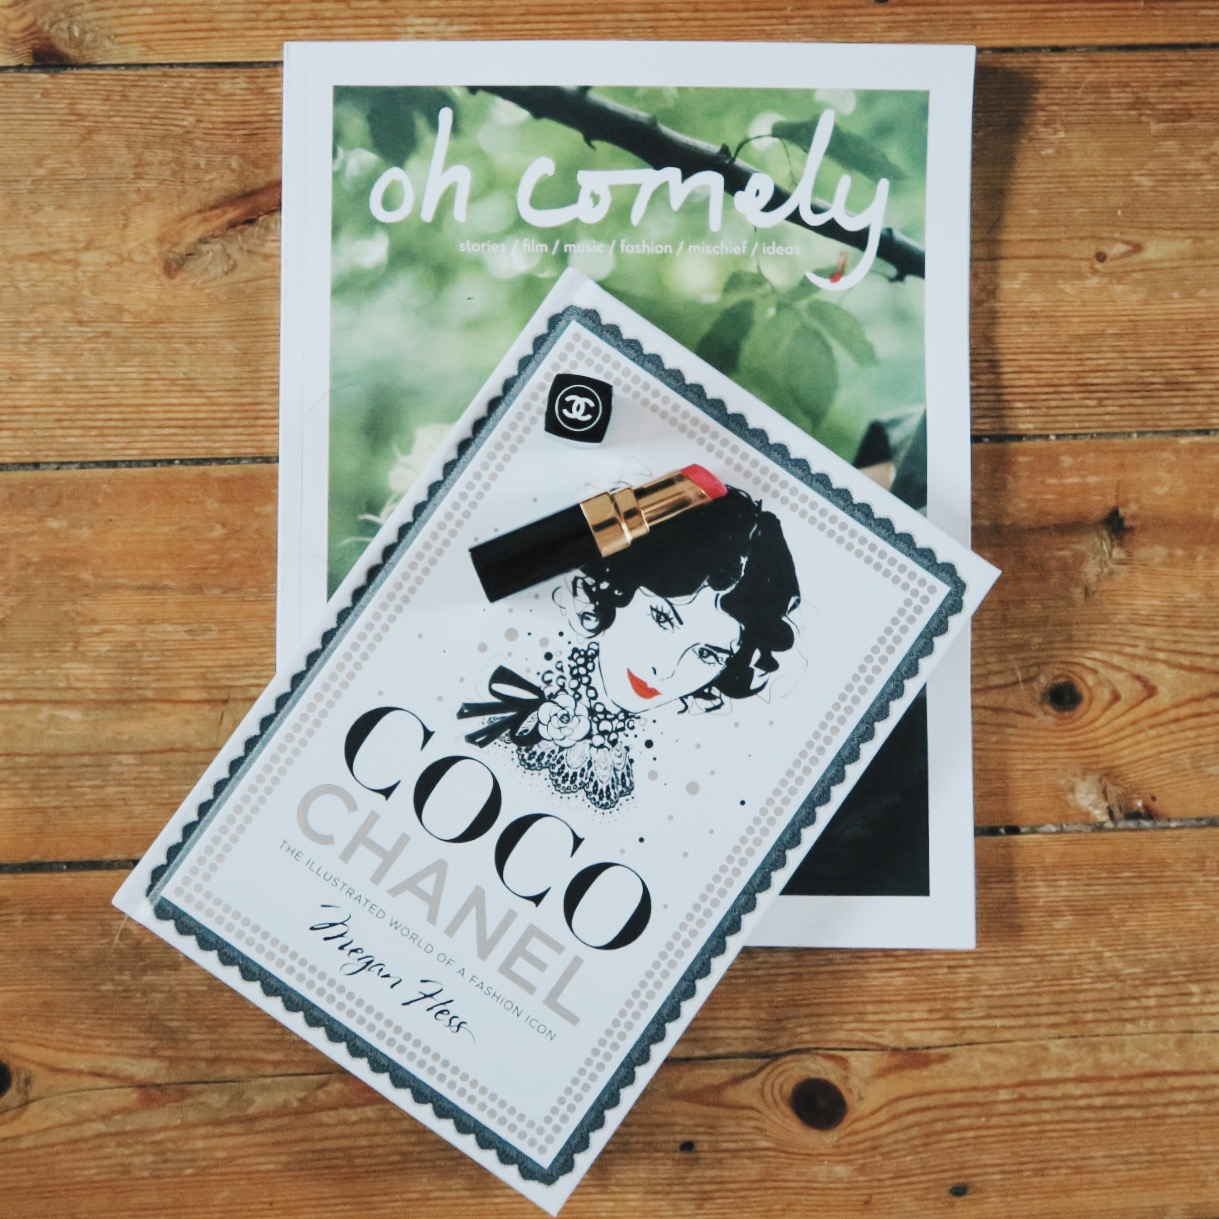 Oh Comely Magazine, Coco Chanel, Chanel Lipstick, Katie Writes,